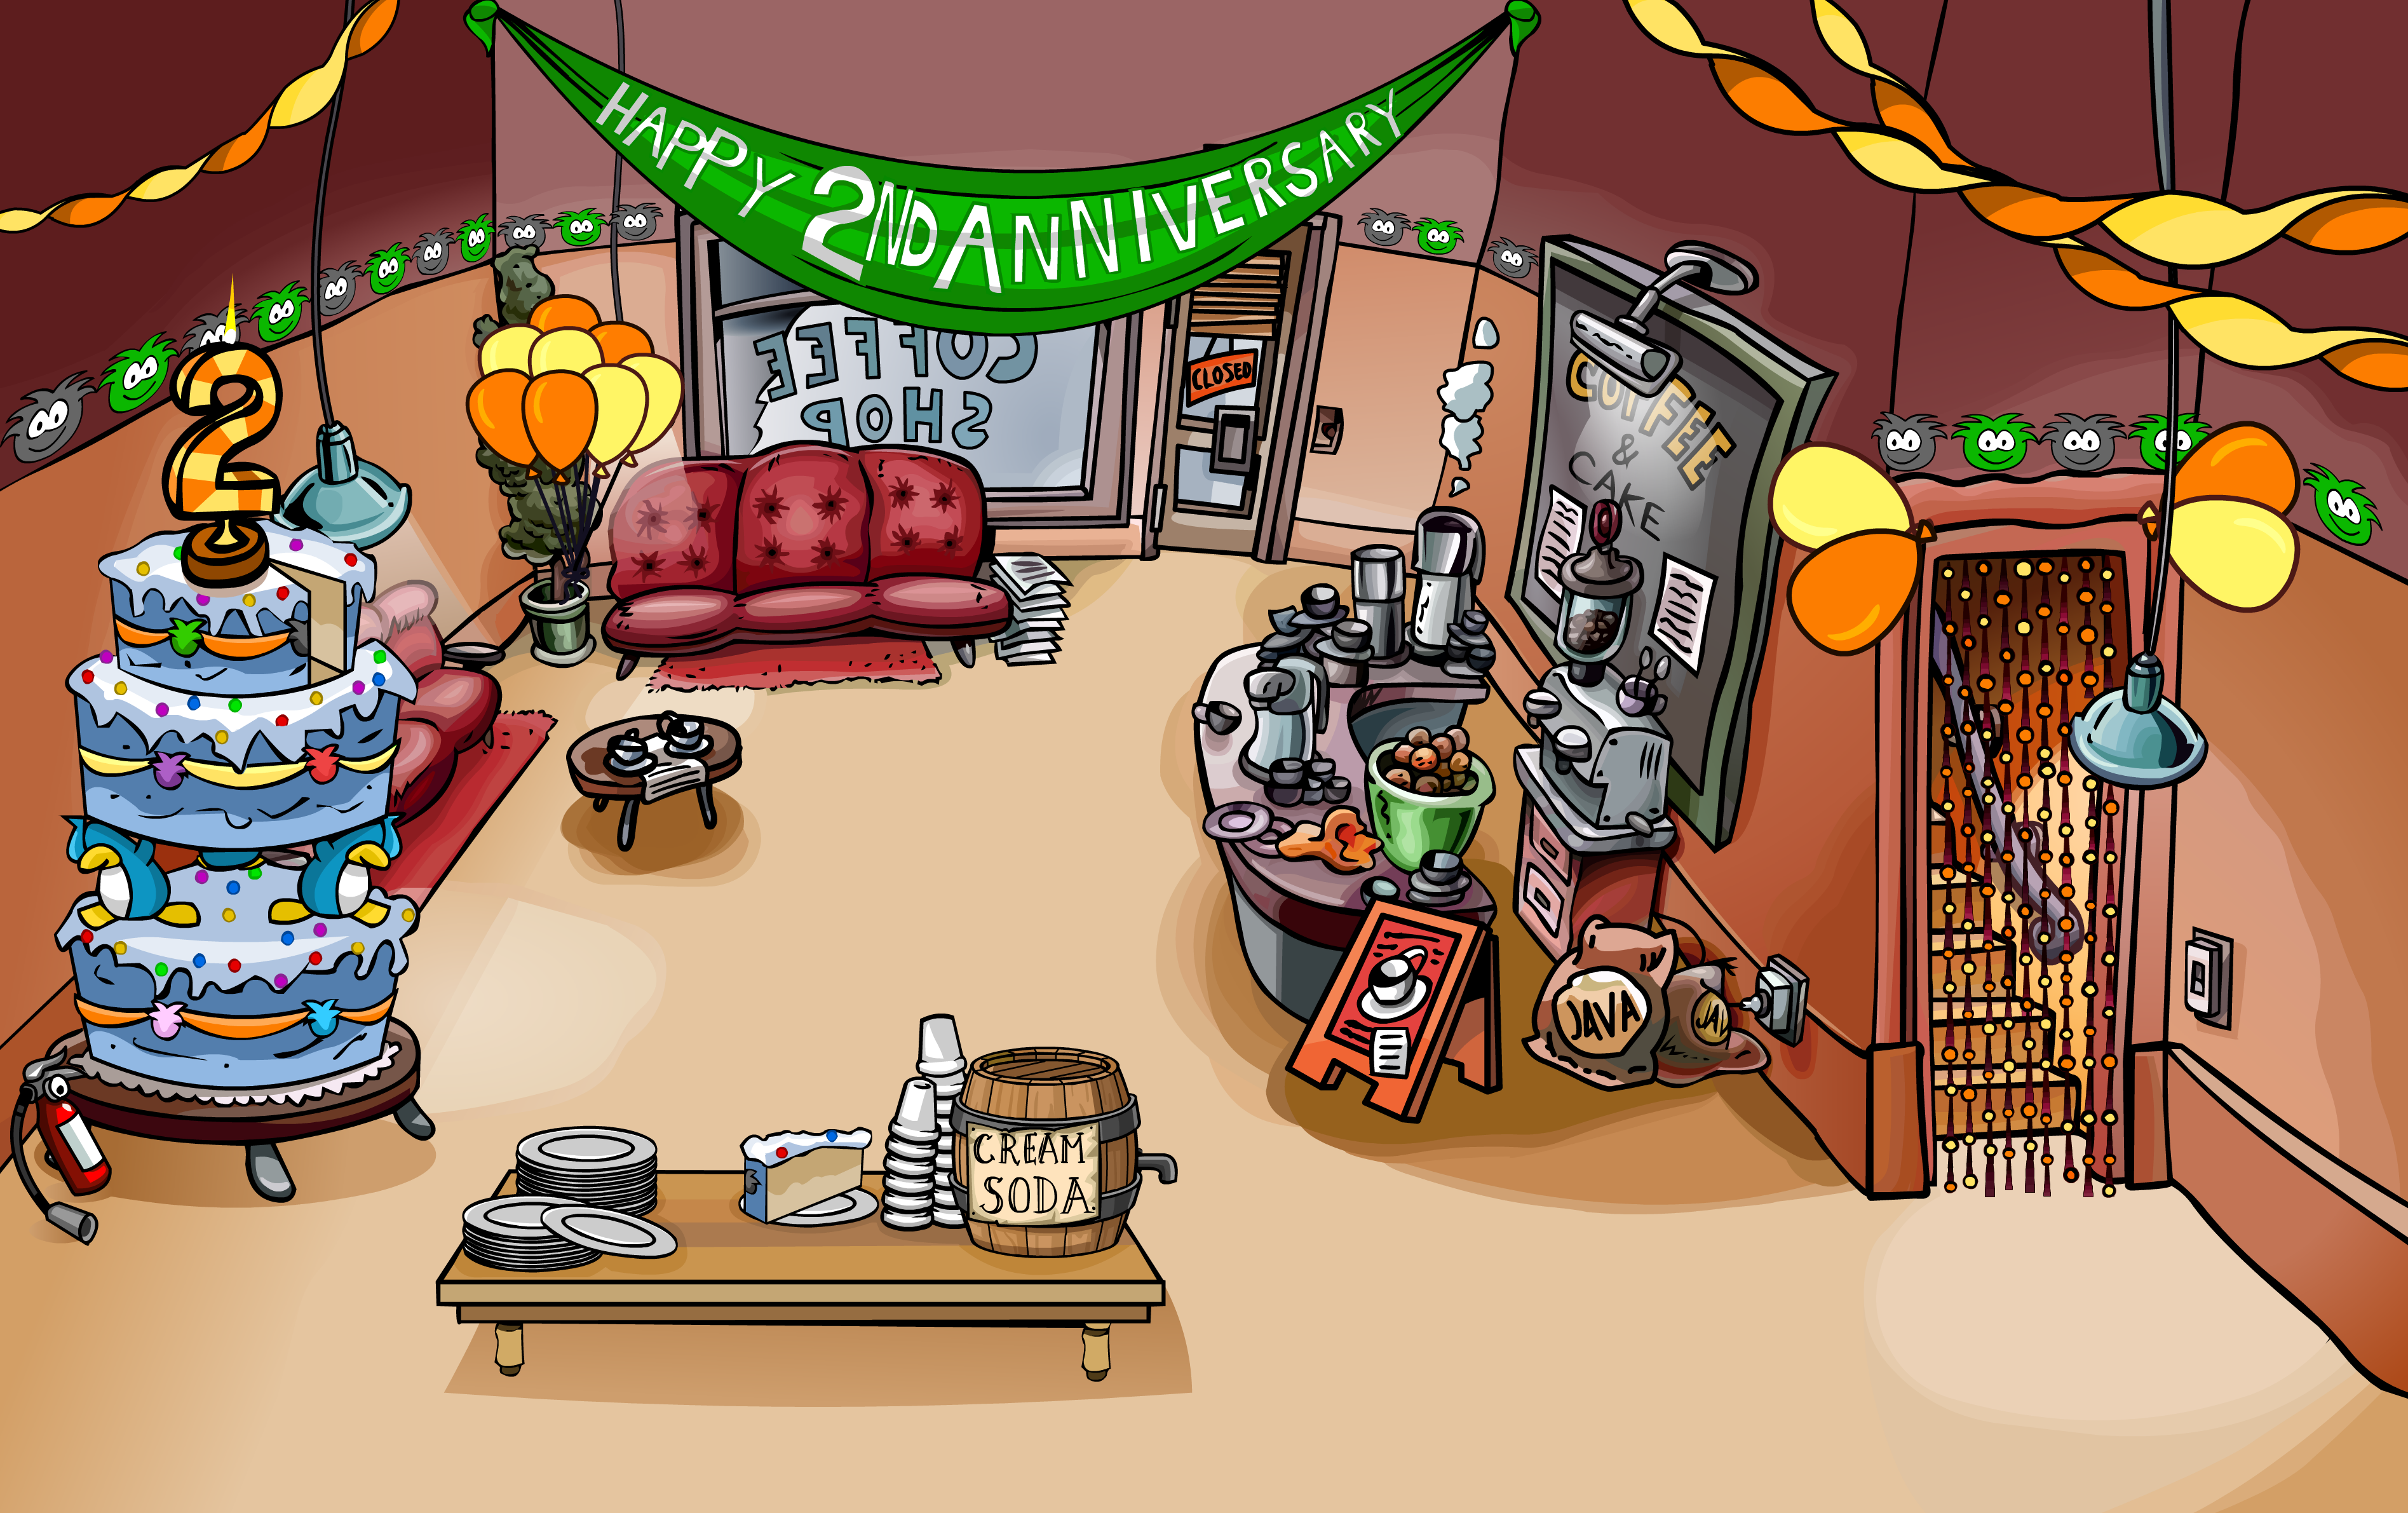 Image nd anniversary party coffee shop club penguin wiki